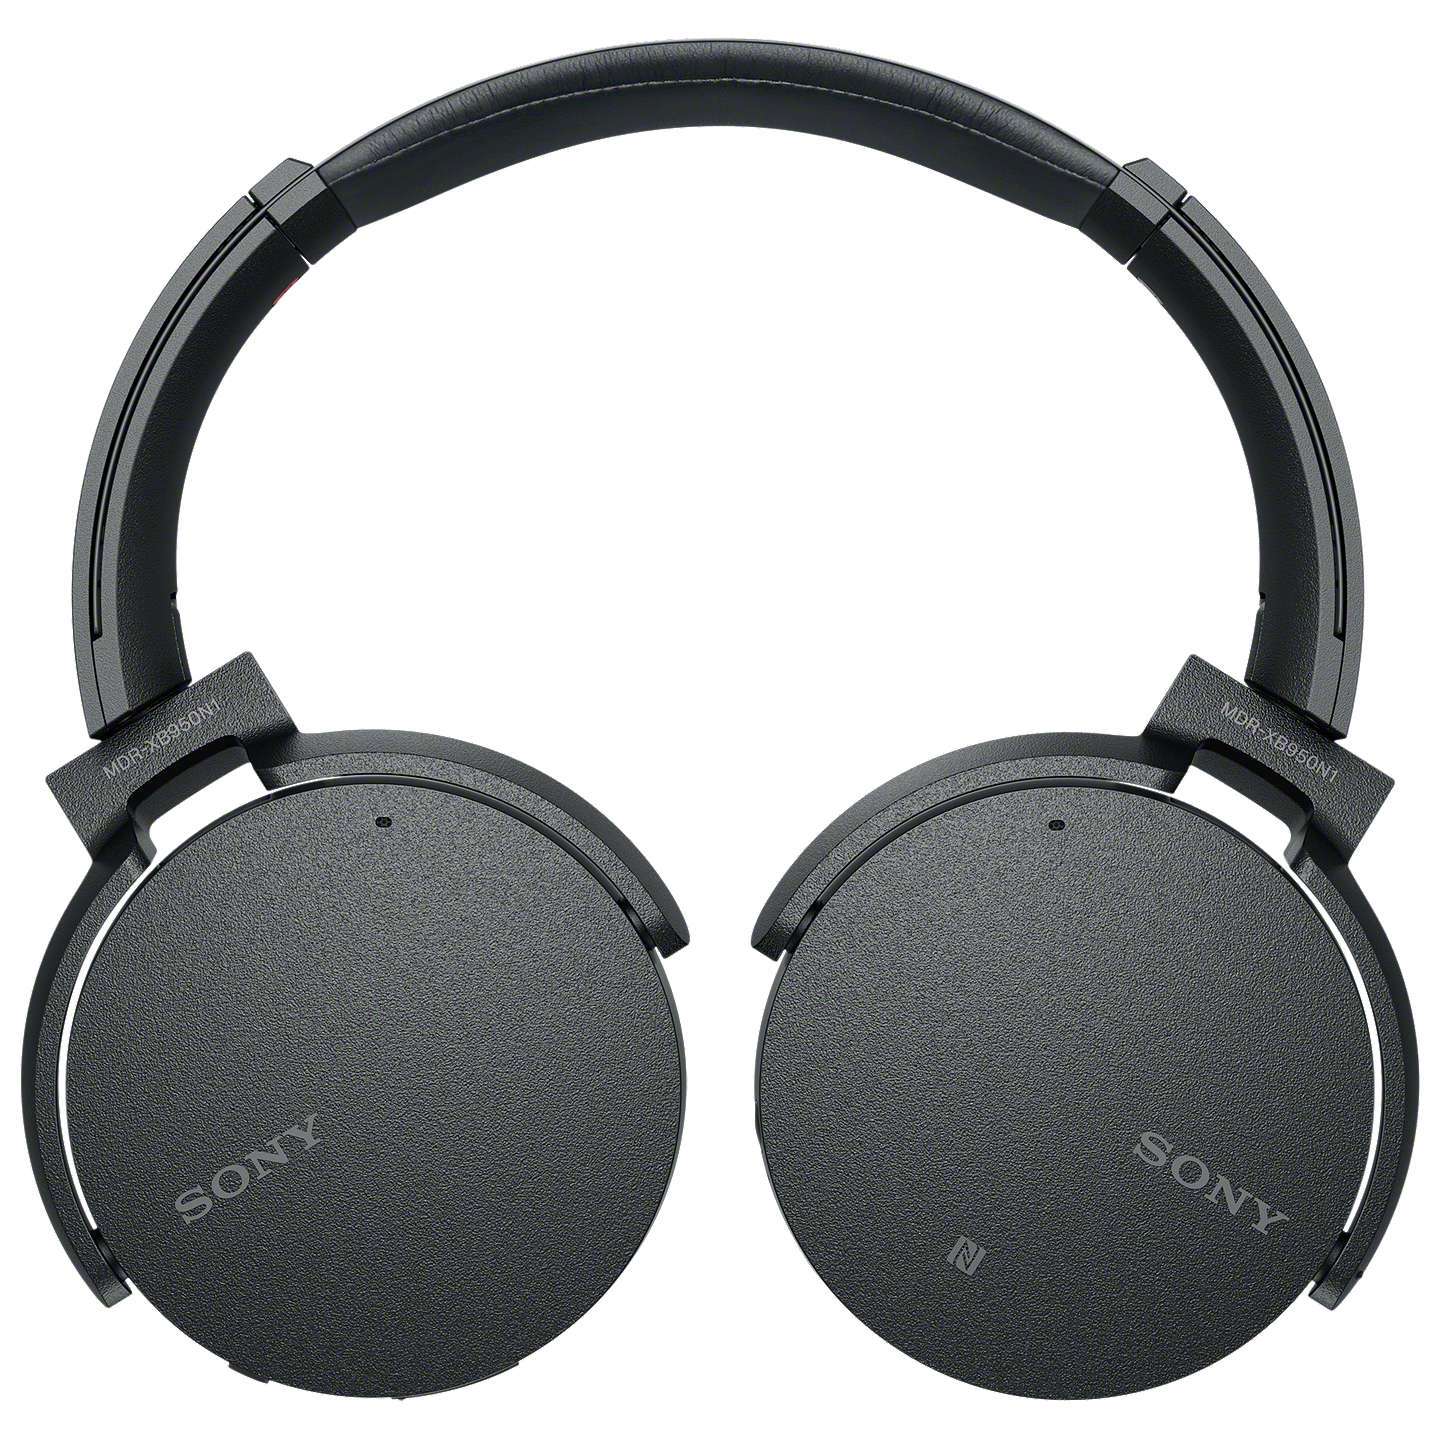 Sony MDR-XB950N1 Noise Cancelling Extra Bass Bluetooth NFC Over-Ear Headphones At John Lewis